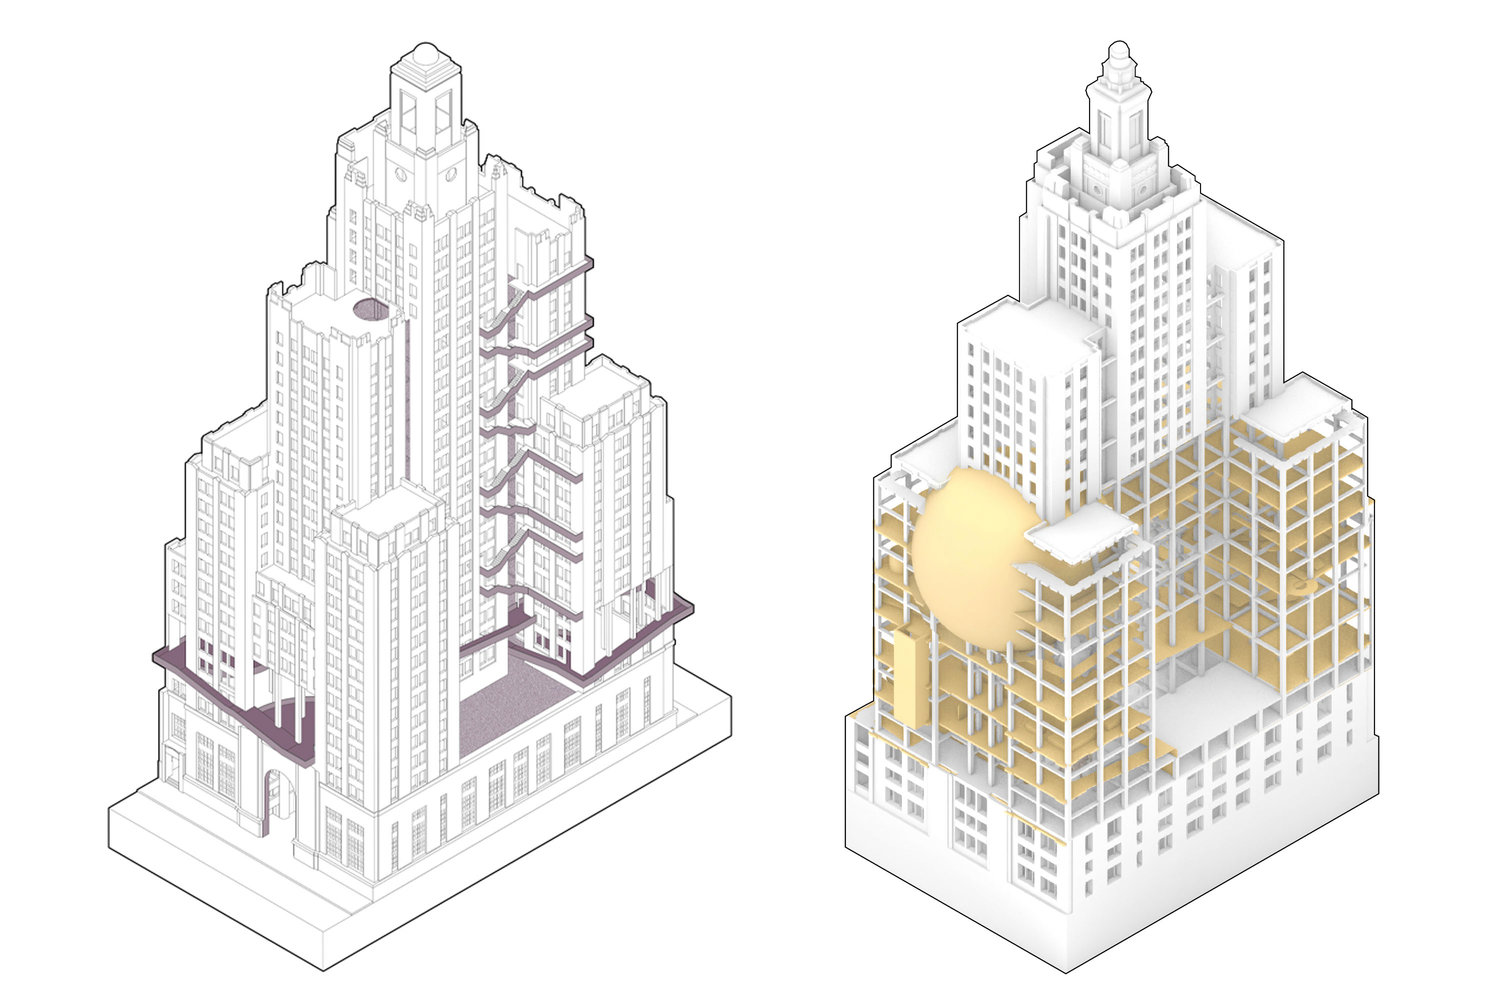 (L): Yiren Mao's design explores city living post-pandemic, incorporating social distance practices in the series of stairs.